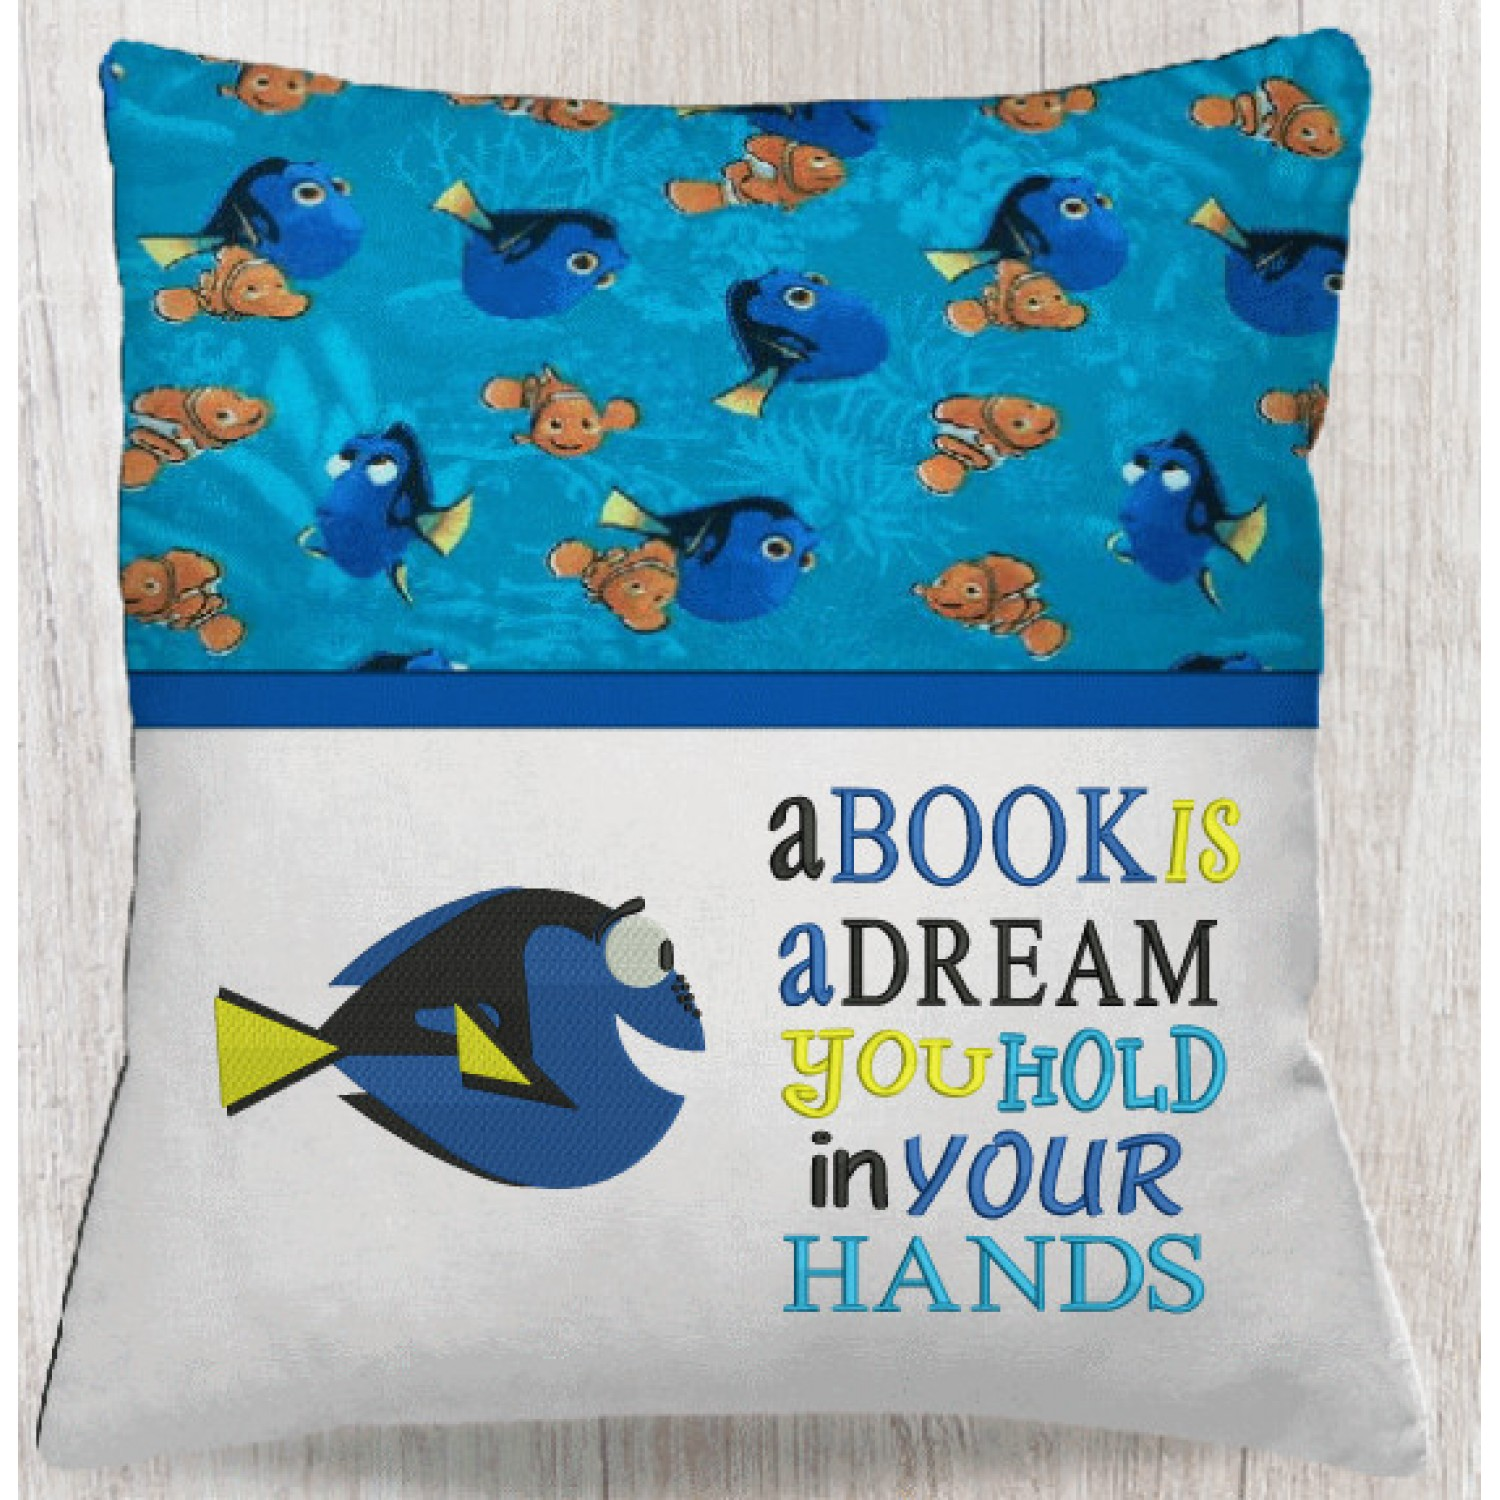 Dory fish with A book is a dream